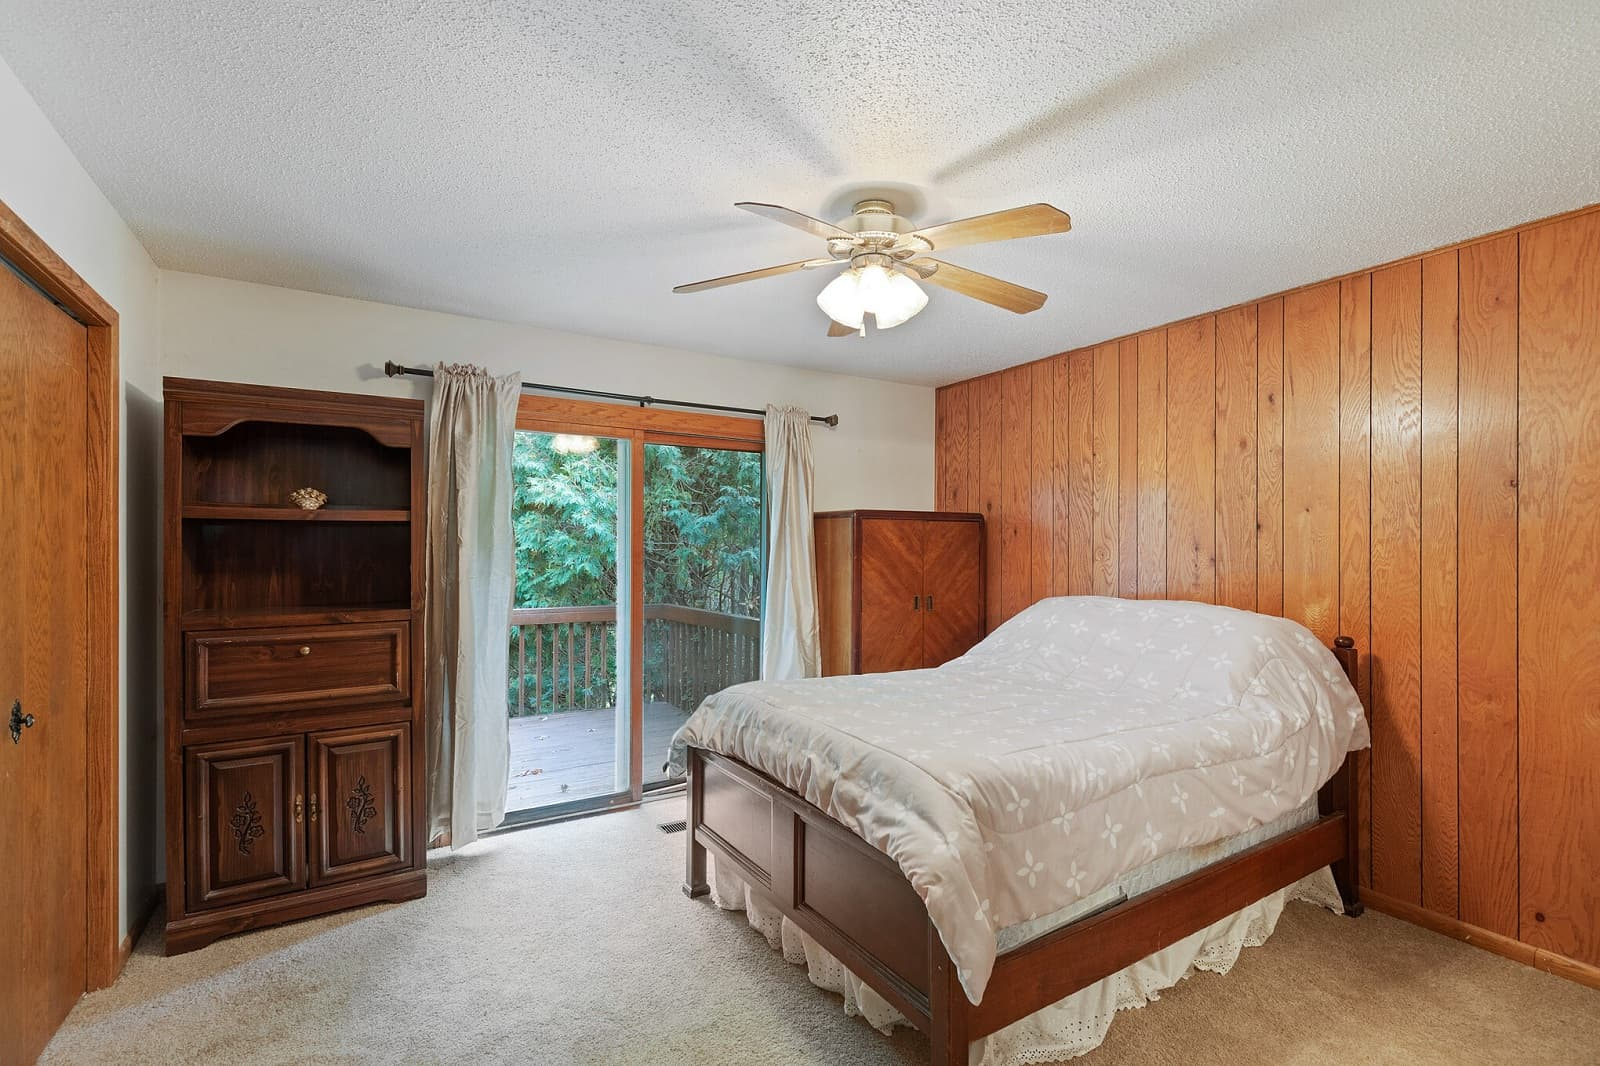 Real Estate Photography in Minnetonka - MN - Bedroom View